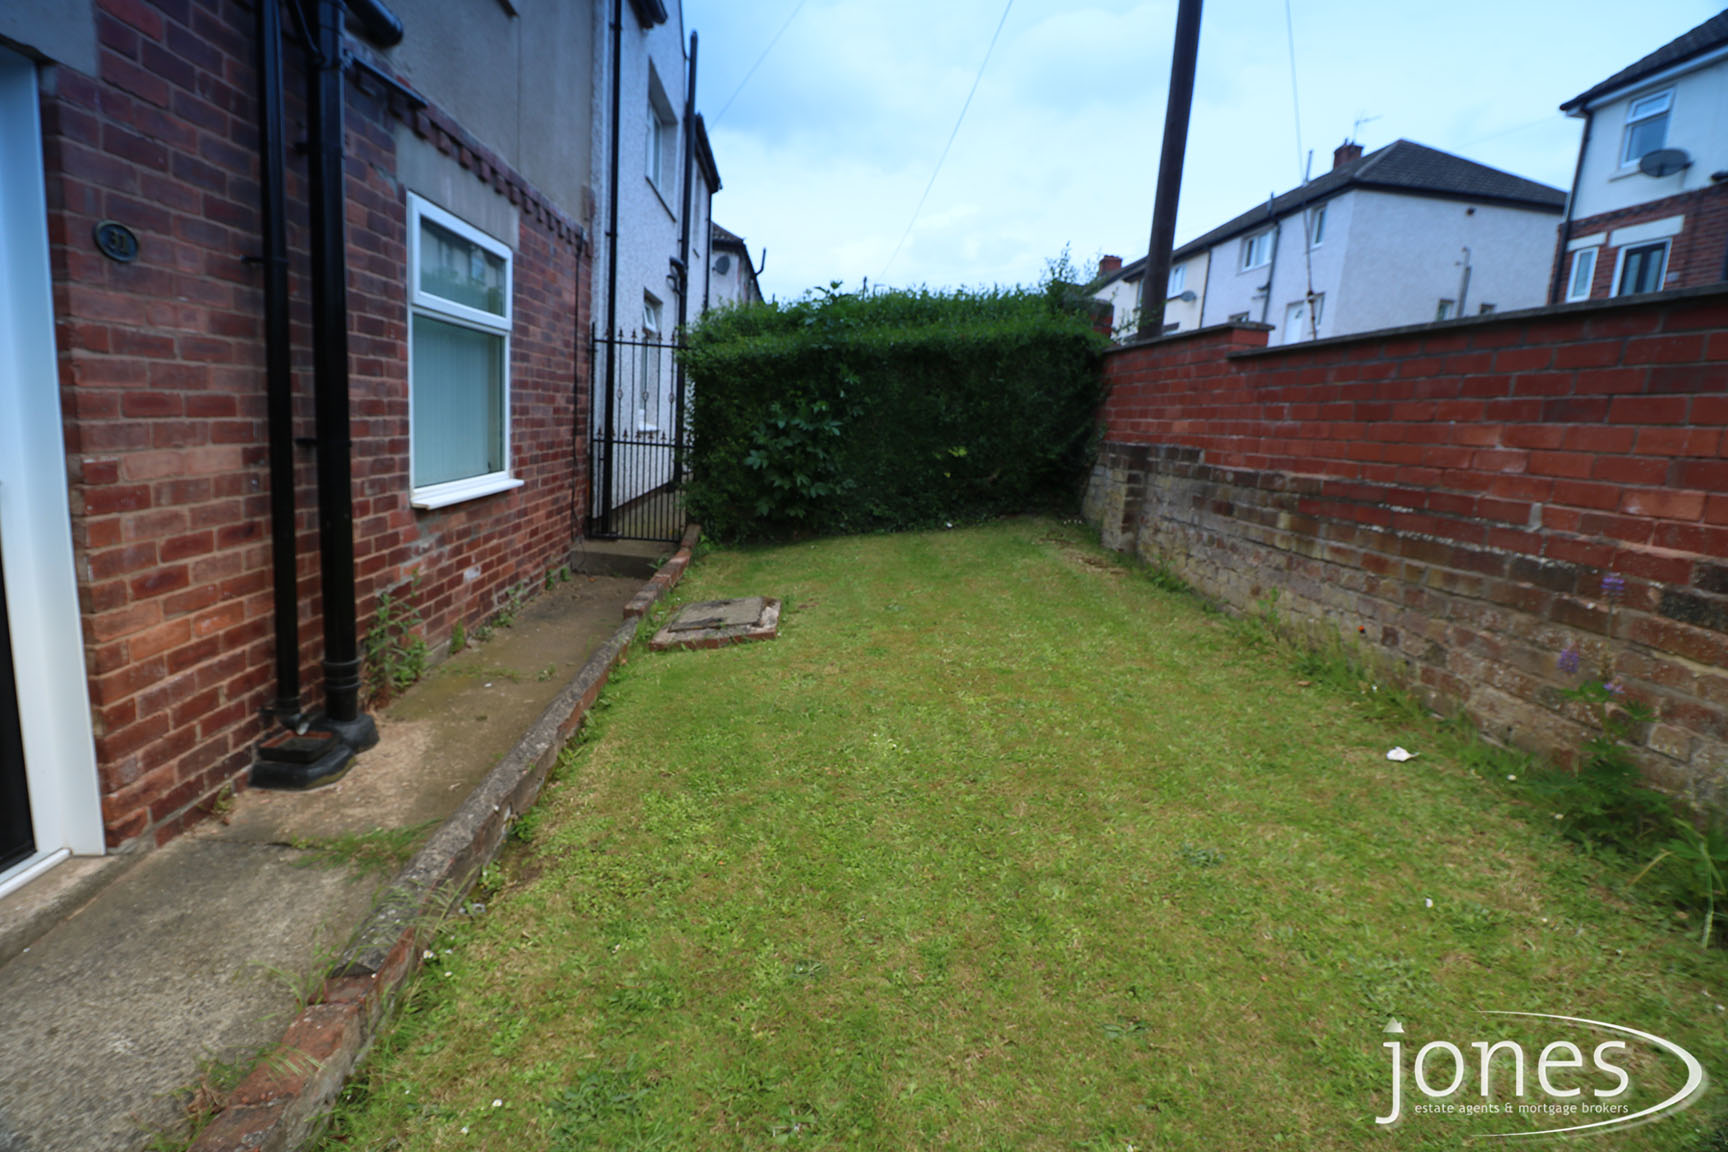 Home for Sale Let - Photo 12 Mill Crescent, Whitwell, Worksop, S80 4SF